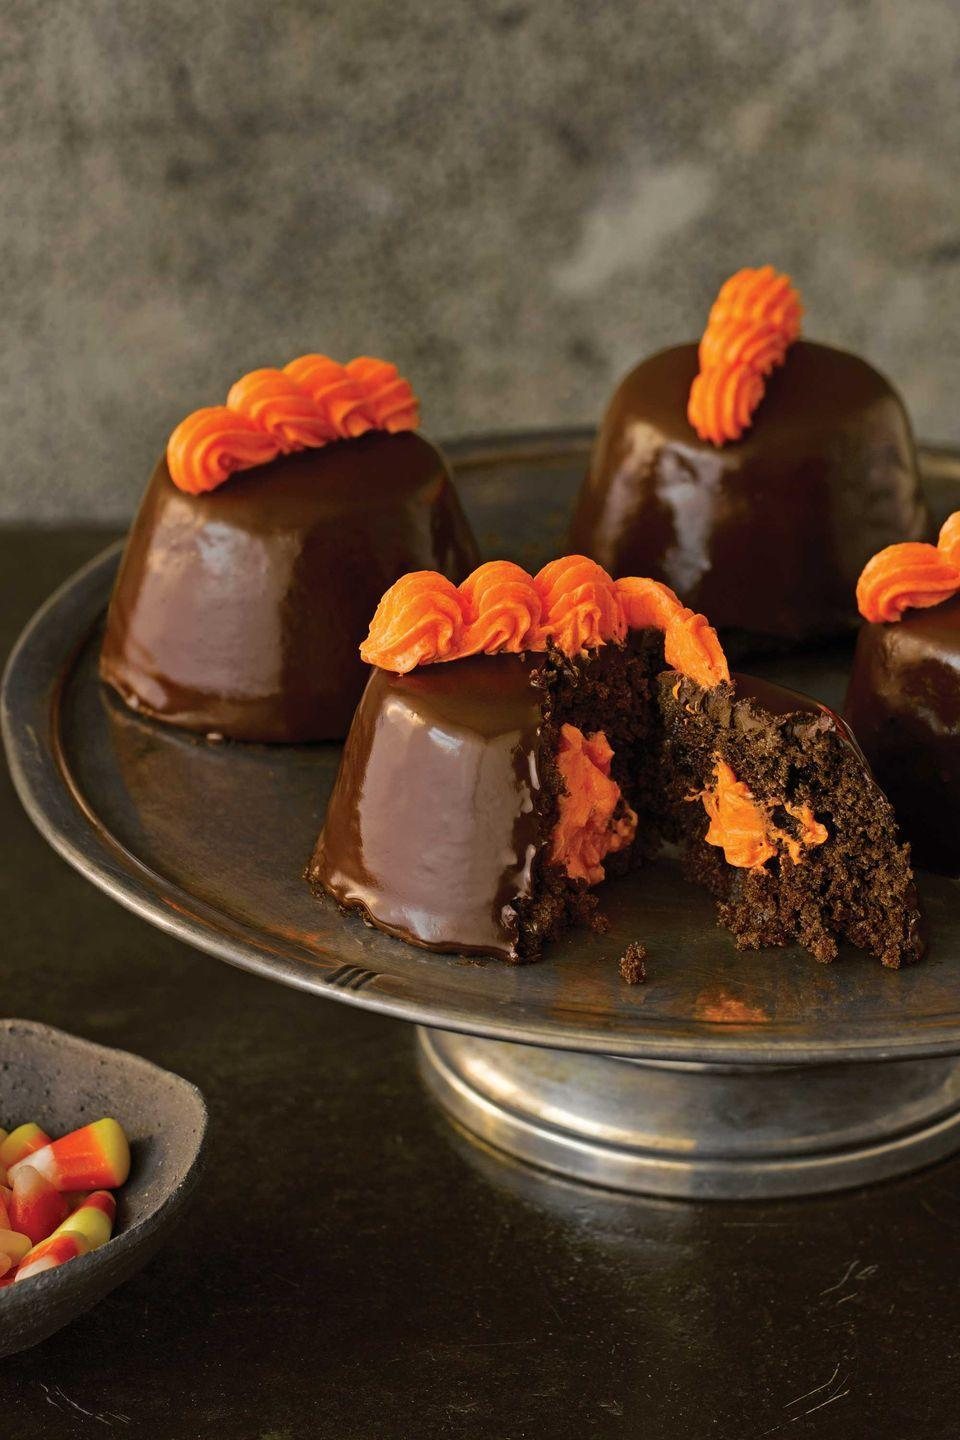 """<p>Orange food coloring, added one drop at a time, gives the cream that tops these bite-size snacks its brilliant hue.</p><p><strong>Recipes: </strong><strong><a href=""""https://www.countryliving.com/food-drinks/recipes/a2422/classic-chocolate-cake/"""" rel=""""nofollow noopener"""" target=""""_blank"""" data-ylk=""""slk:Classic Chocolate Cake"""" class=""""link rapid-noclick-resp"""">Classic Chocolate Cake</a> and </strong><a href=""""https://www.countryliving.com/food-drinks/recipes/a2428/vanilla-cream-filling/"""" rel=""""nofollow noopener"""" target=""""_blank"""" data-ylk=""""slk:Vanilla Cream Filling"""" class=""""link rapid-noclick-resp""""><strong>Vanilla Cream Filling</strong></a></p>"""